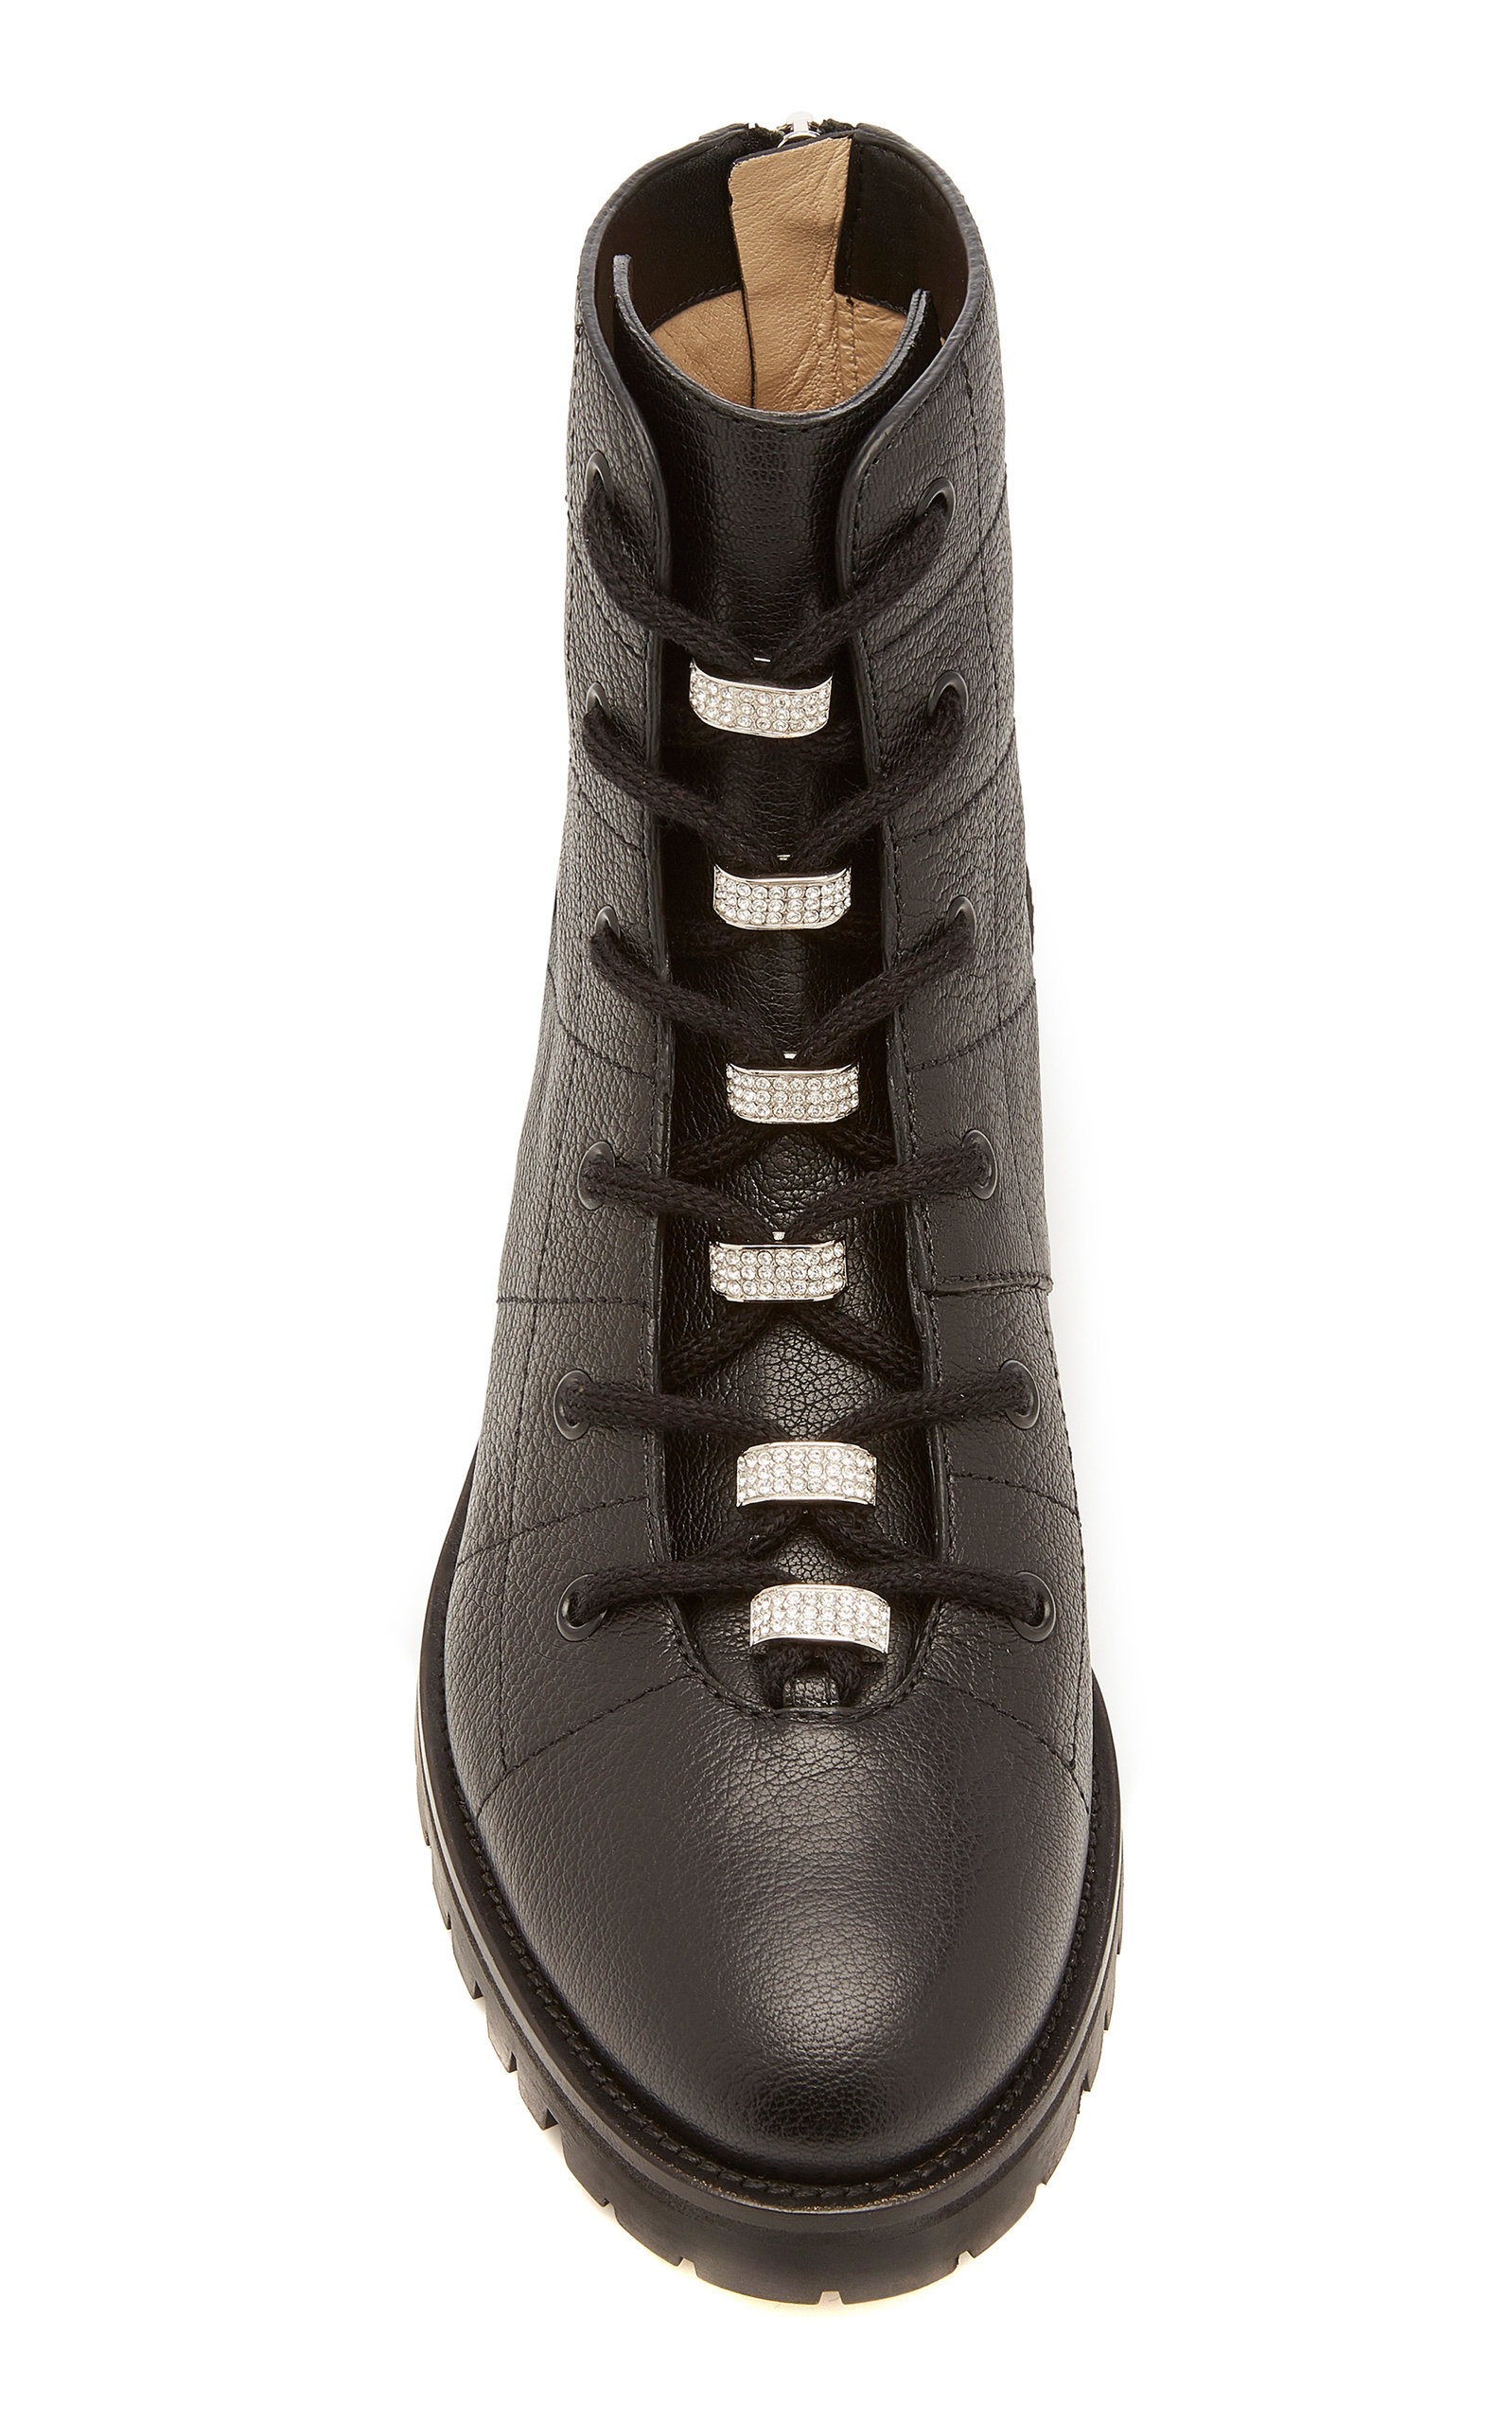 Jimmy Choo Boots Bren Crystal-Embellished Leather Ankle Boots